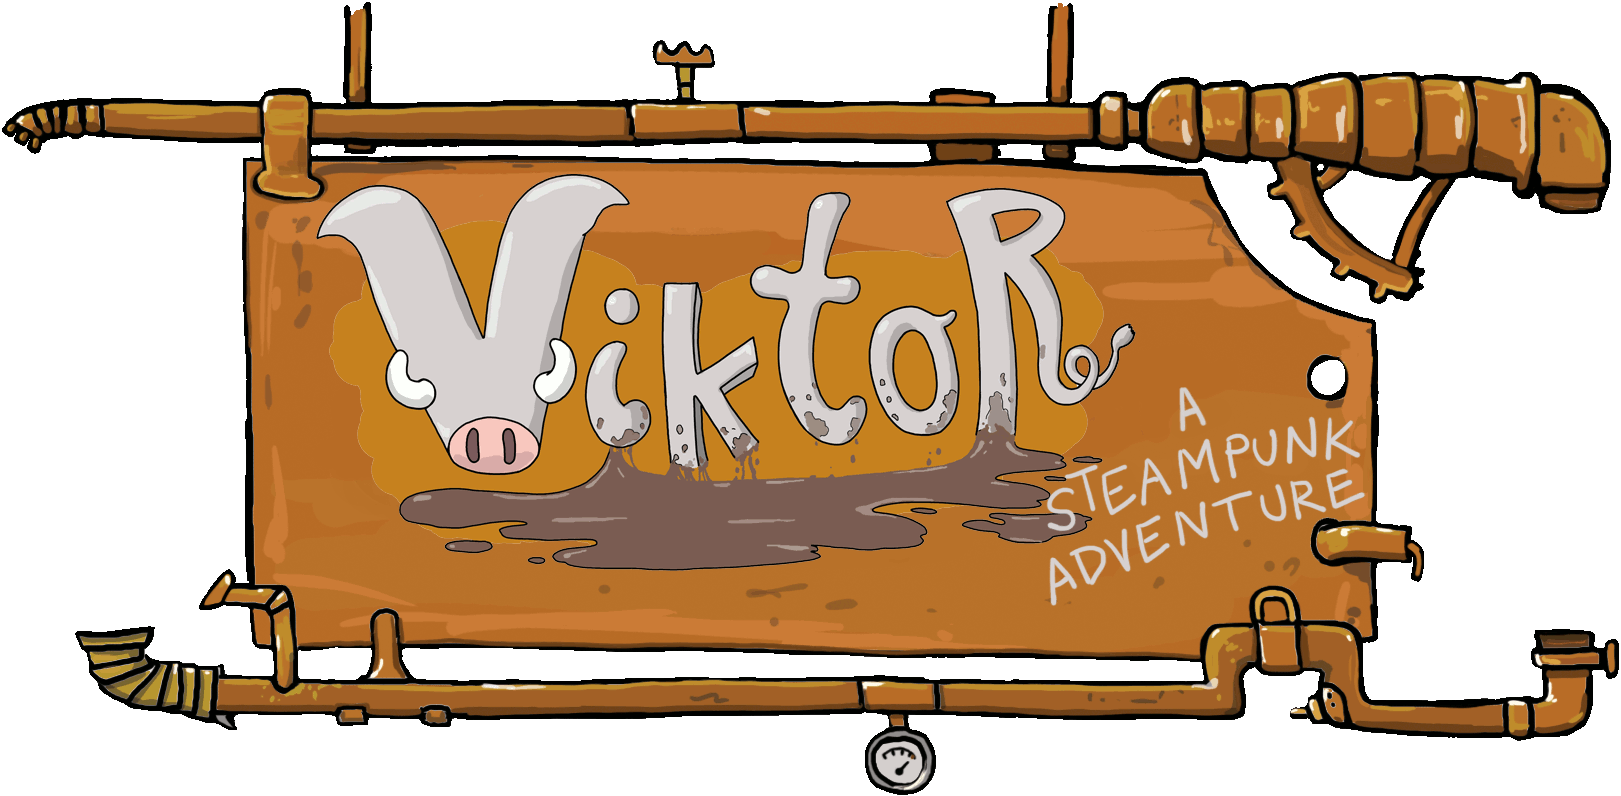 Viktor, a steampunk adventure